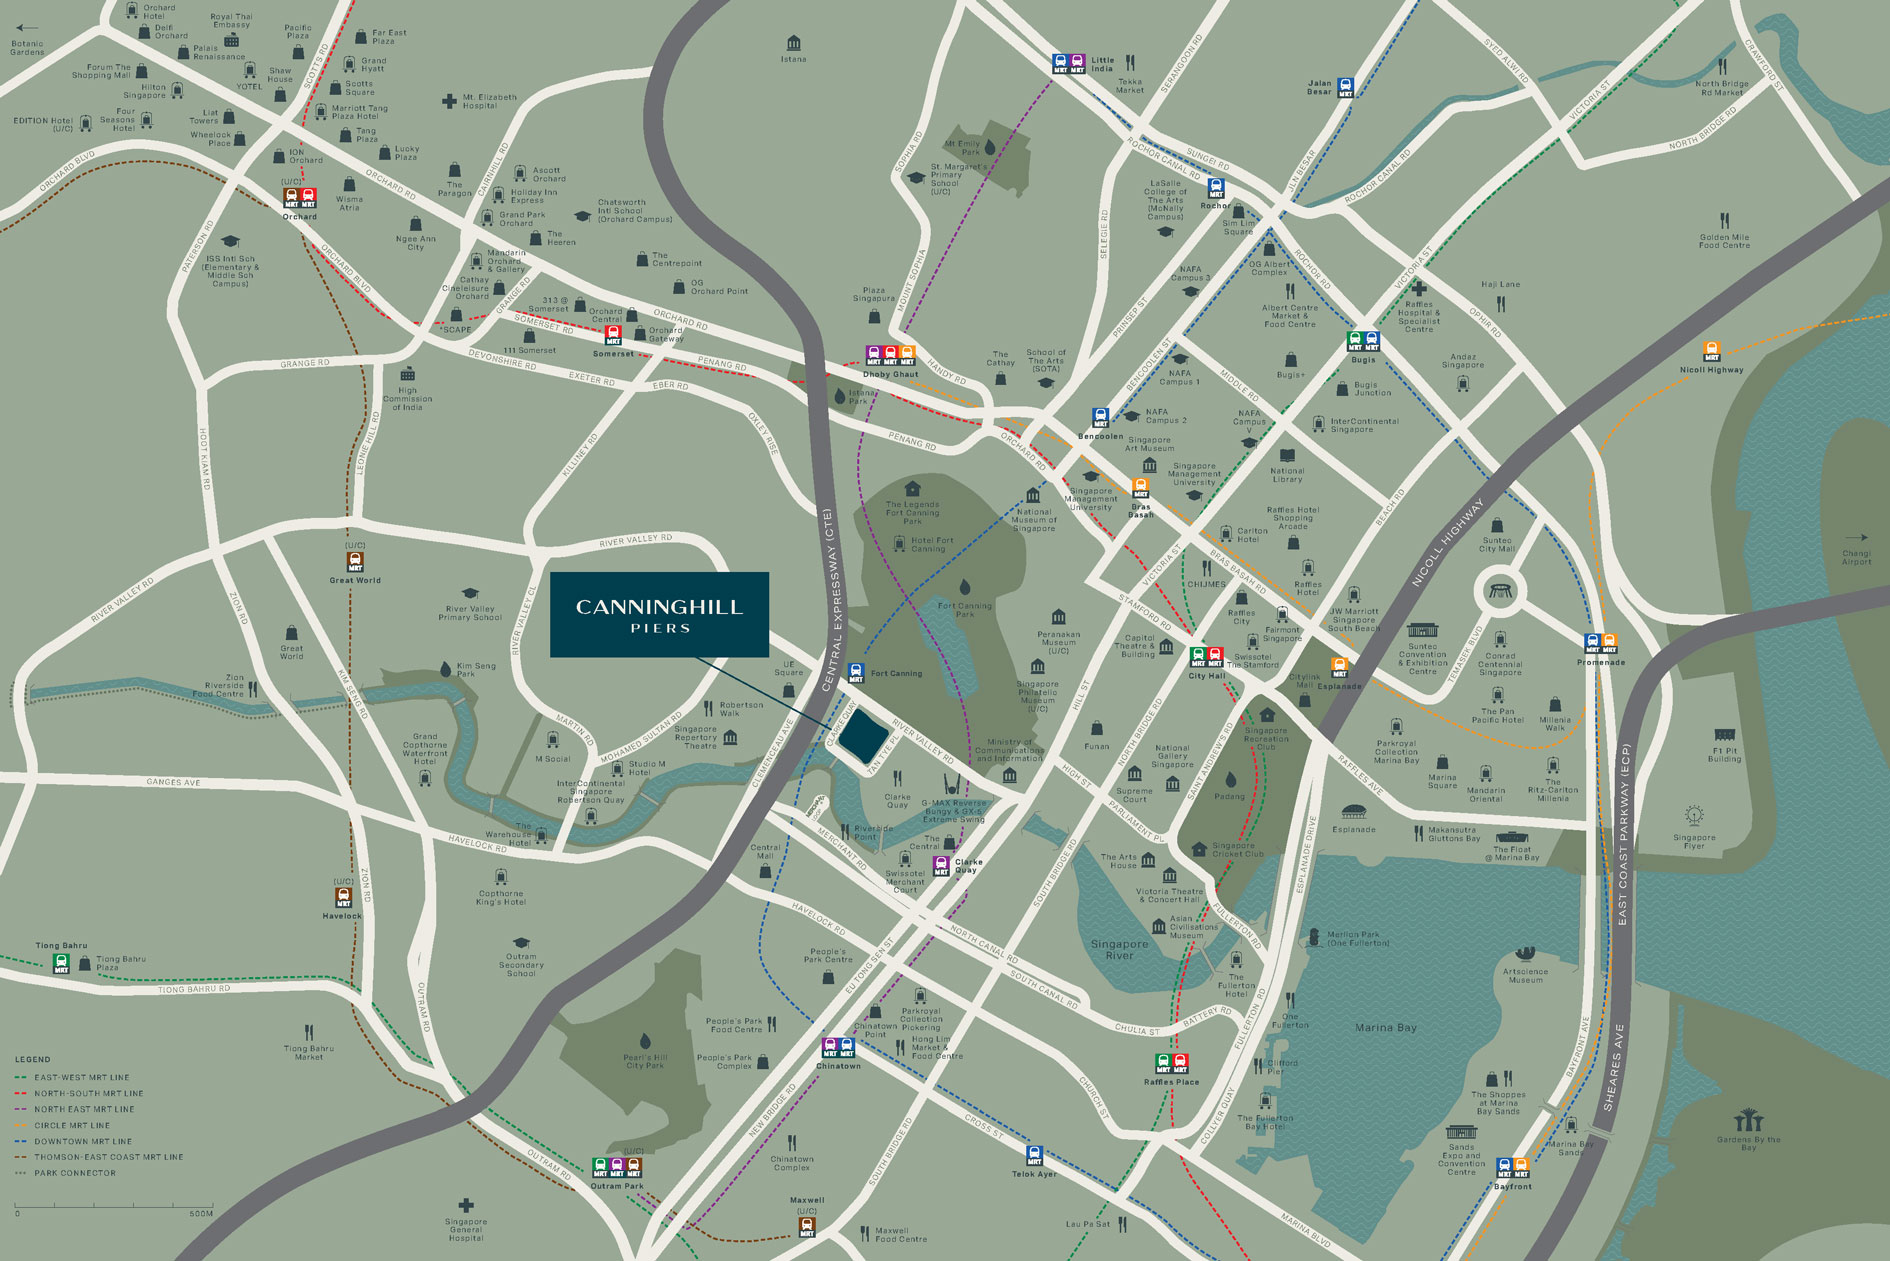 Canninghill-Square-Location-at-River-Valley-Road-Singapore-by-CDL-and-Capitaland-1